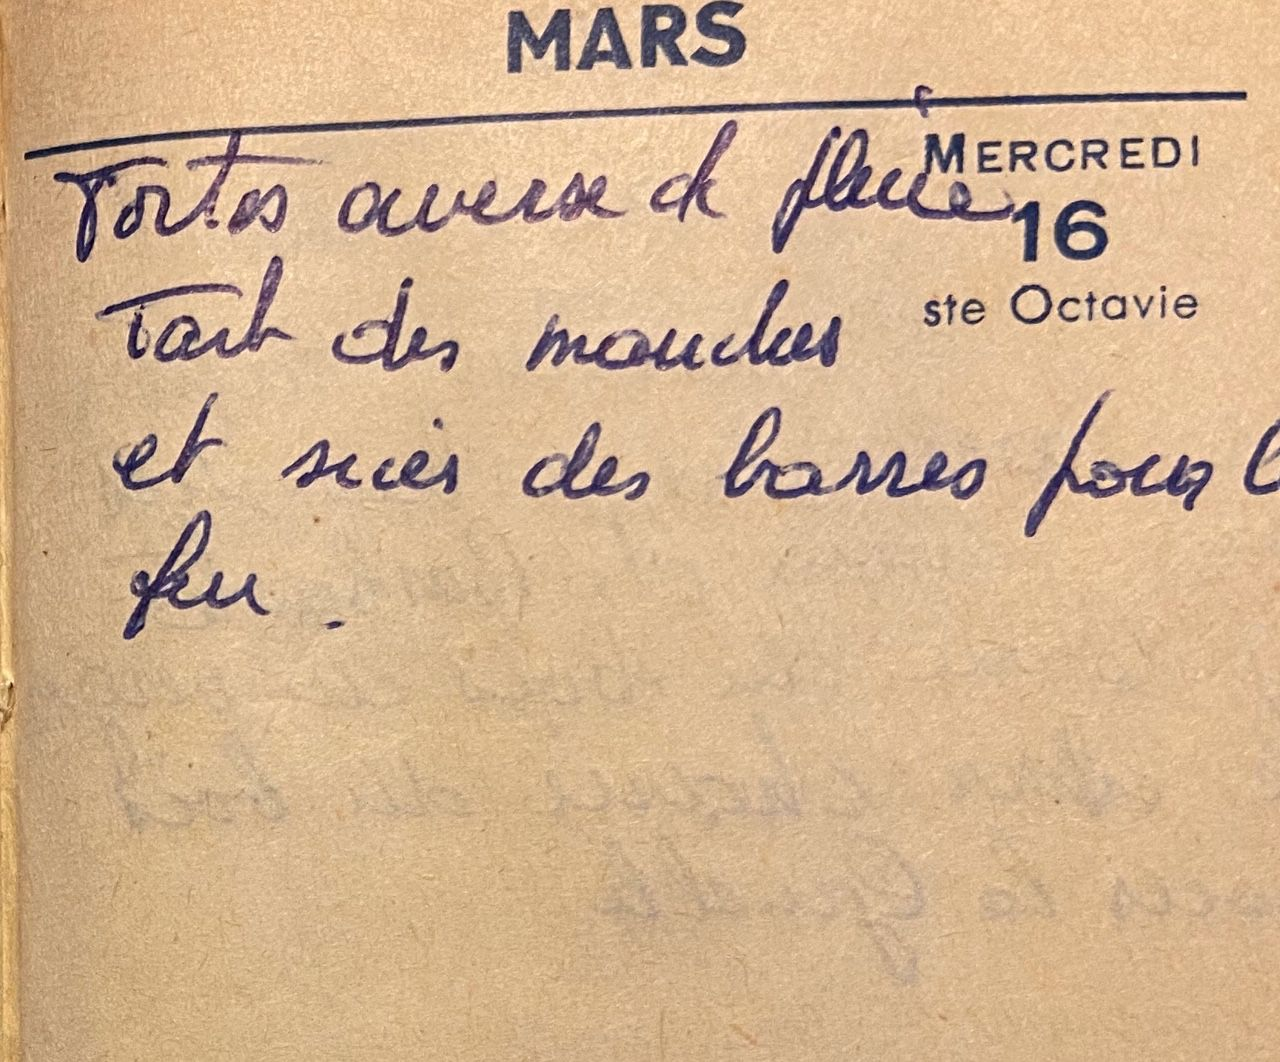 Mercredi 16 mars 1960 - Scier